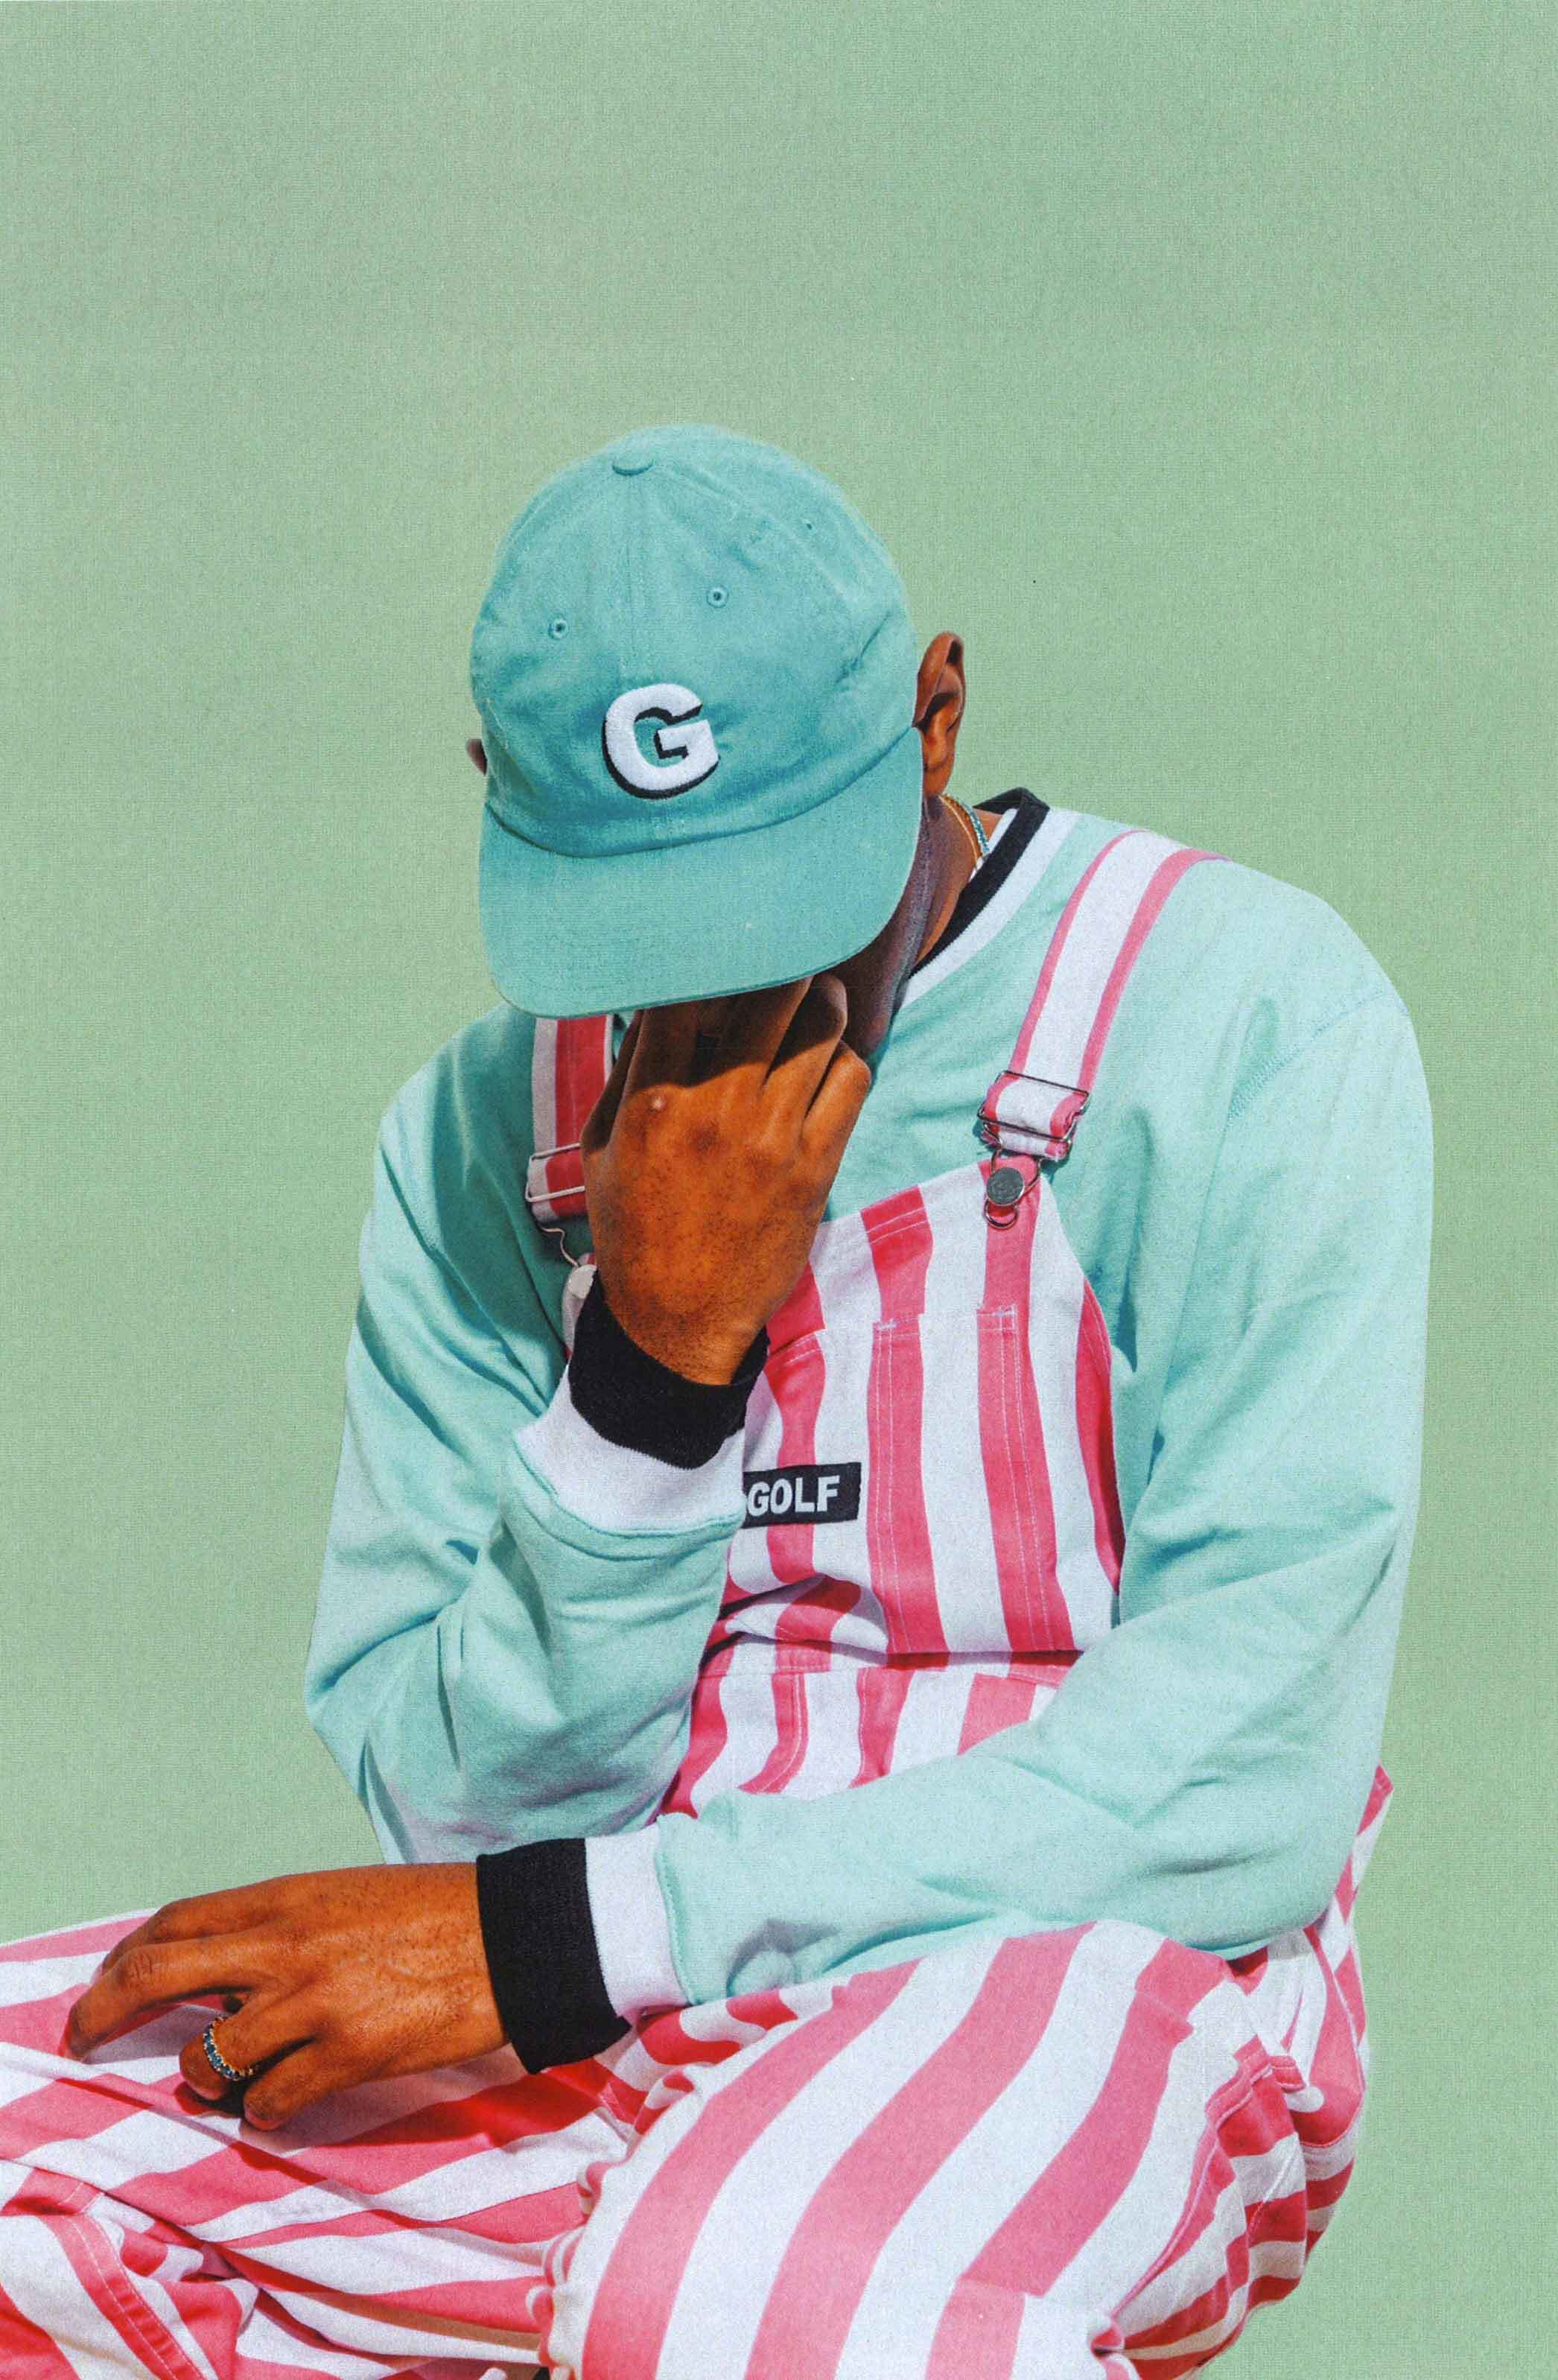 75da744e449d The Golf Wang label isn t Tyler s first foray into fashion  earlier this  year he dropped t-shirts that hijacked the White Pride World Wide logo with  the ...